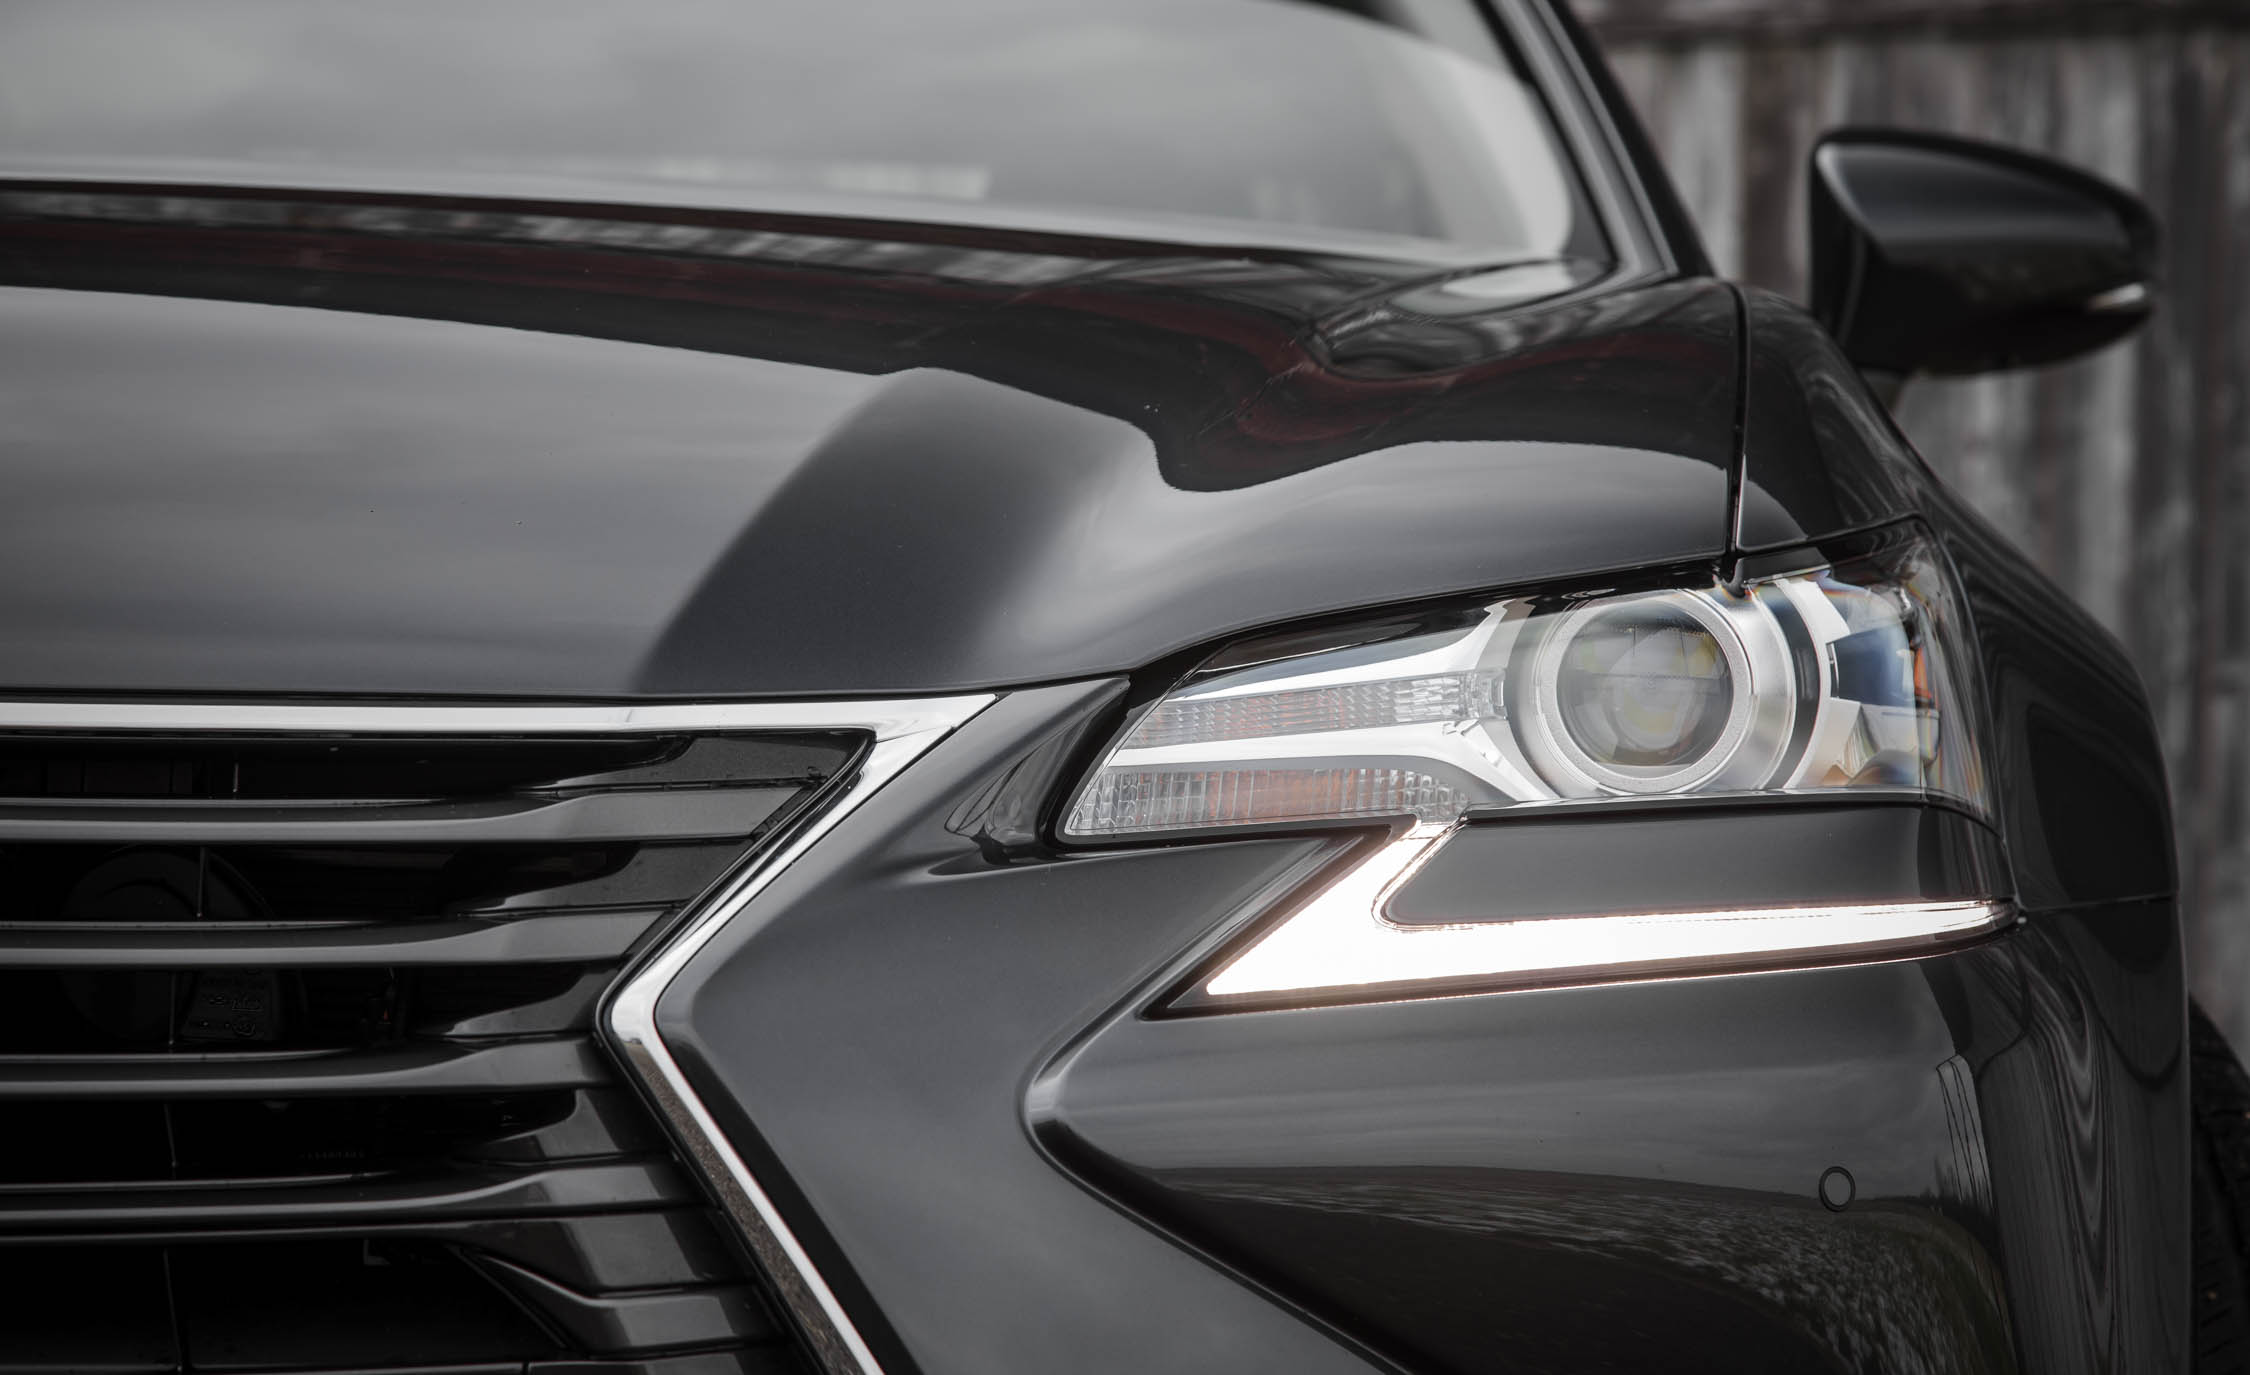 2017 Lexus GS200t Exterior View Headlight (Photo 9 of 26)